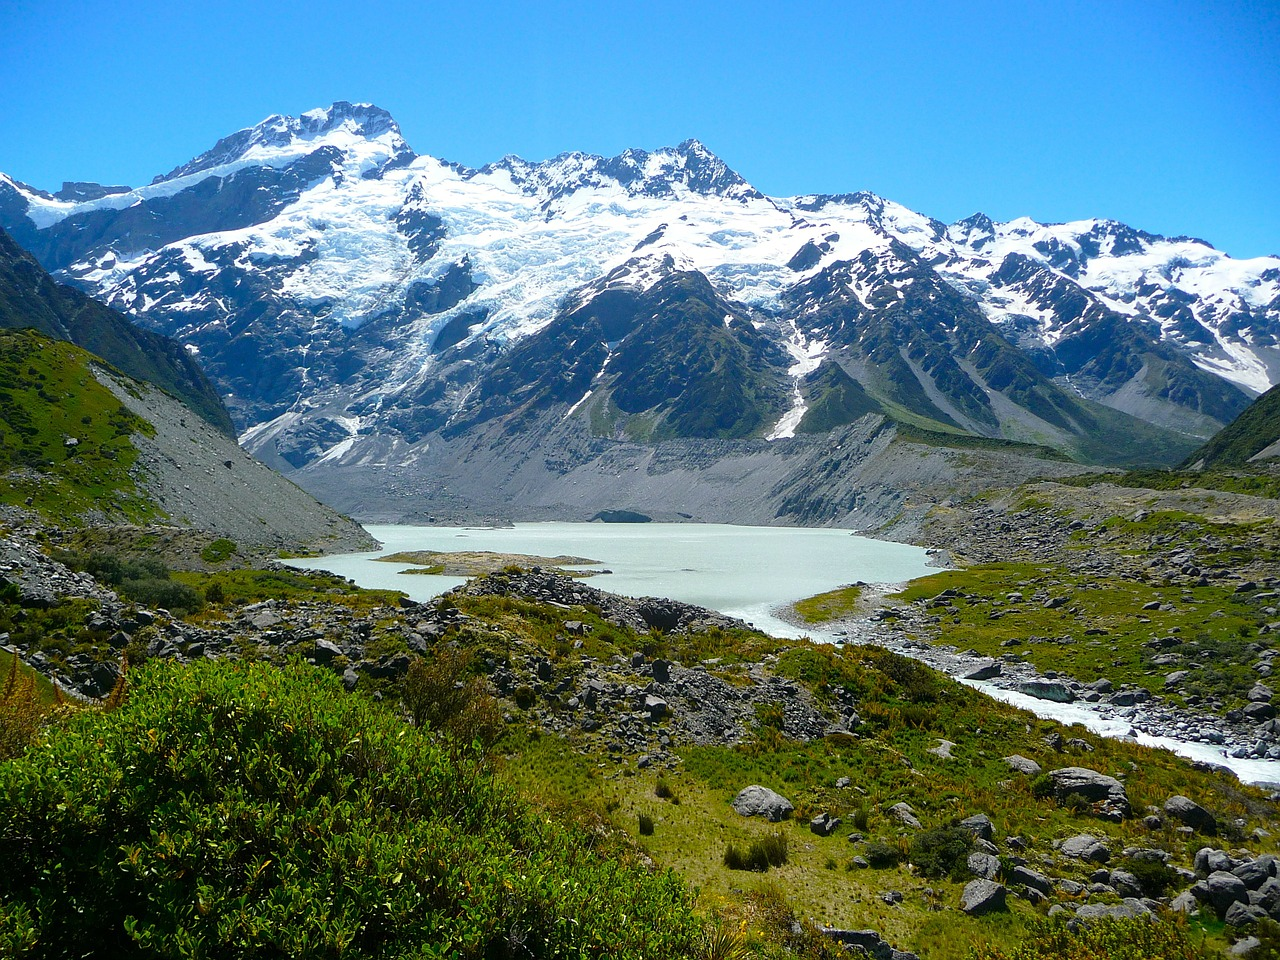 New Zealand - Mount Cook - Pixabay